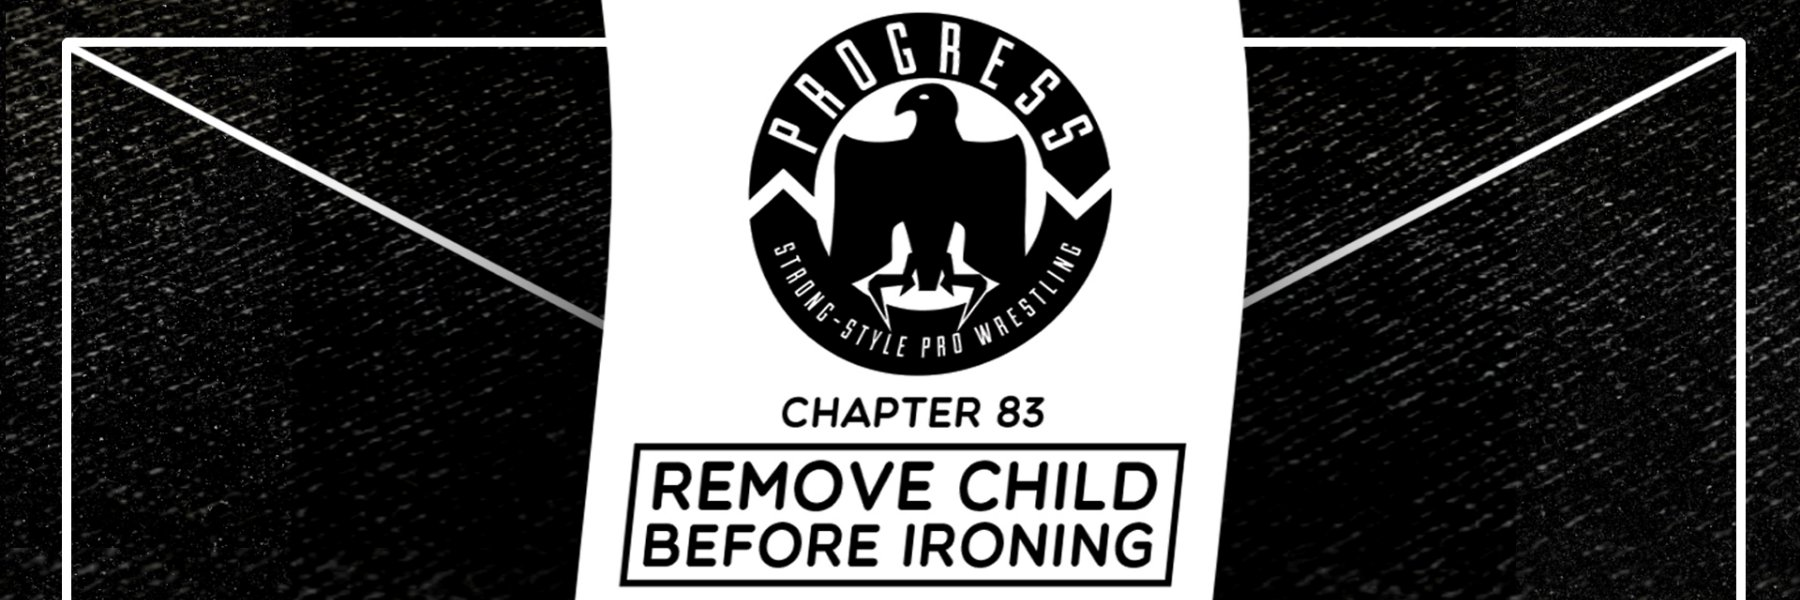 Latest Chapter - 83: Remove Child Before Ironing